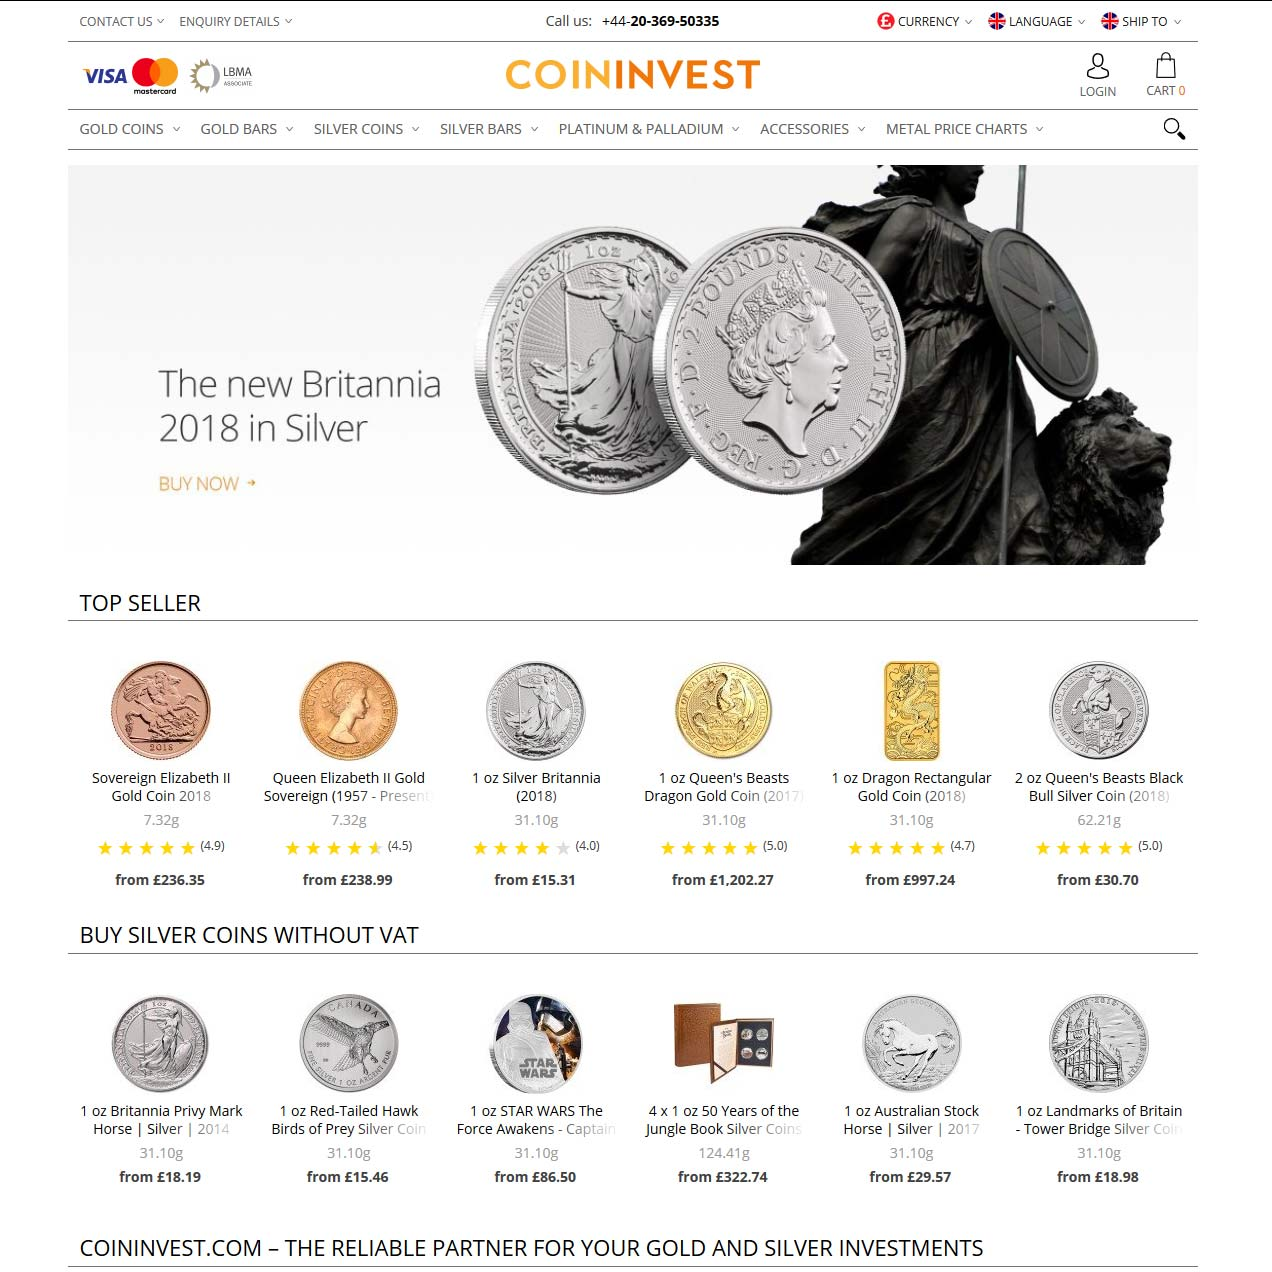 CoinInvest reviews ratings & full company details